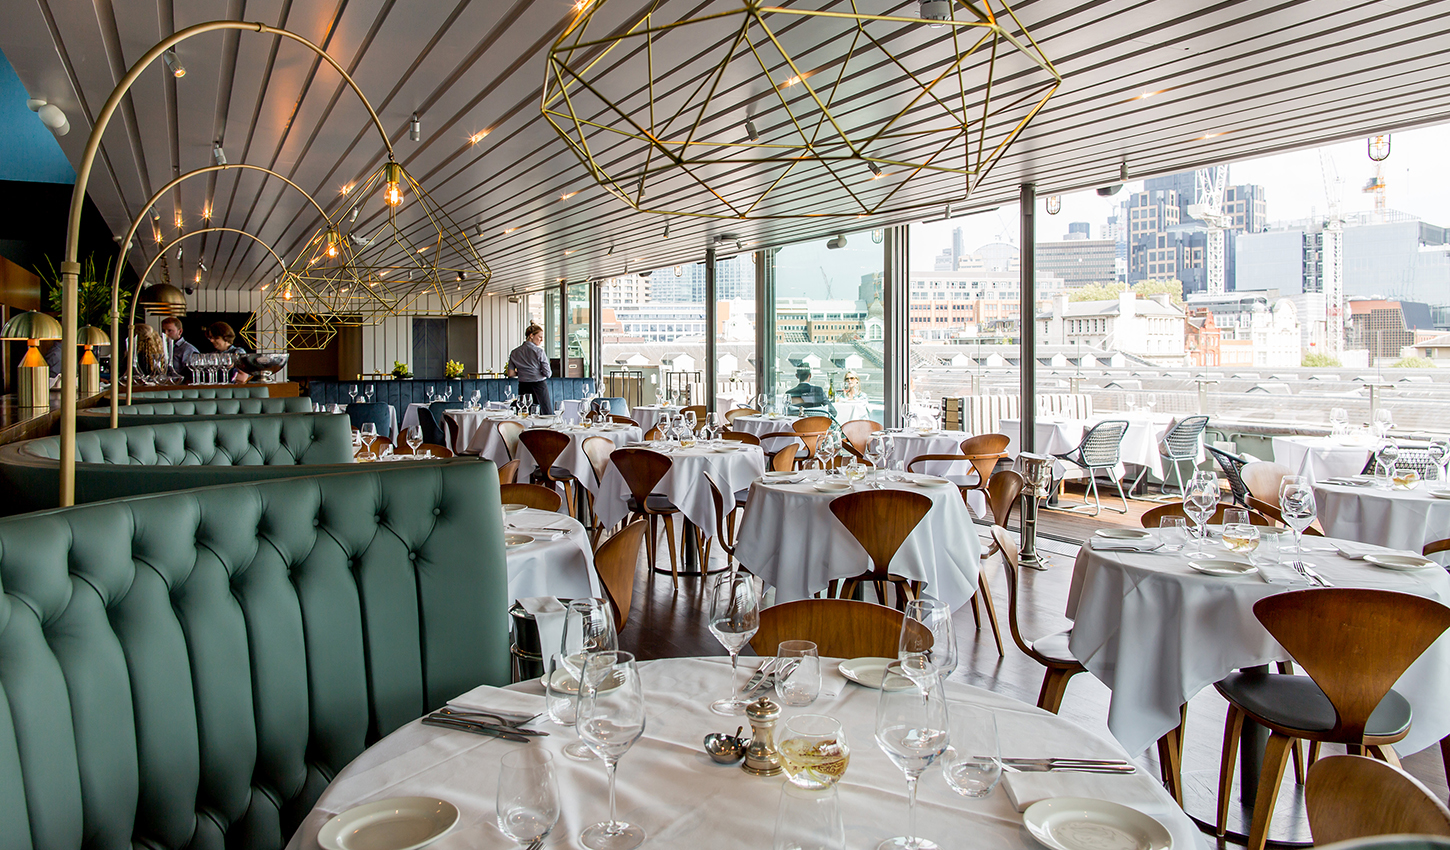 Christmas Dinner Restaurants Near Me 2019.Smiths Of Smithfield 4 Floors Of The Best British Food And